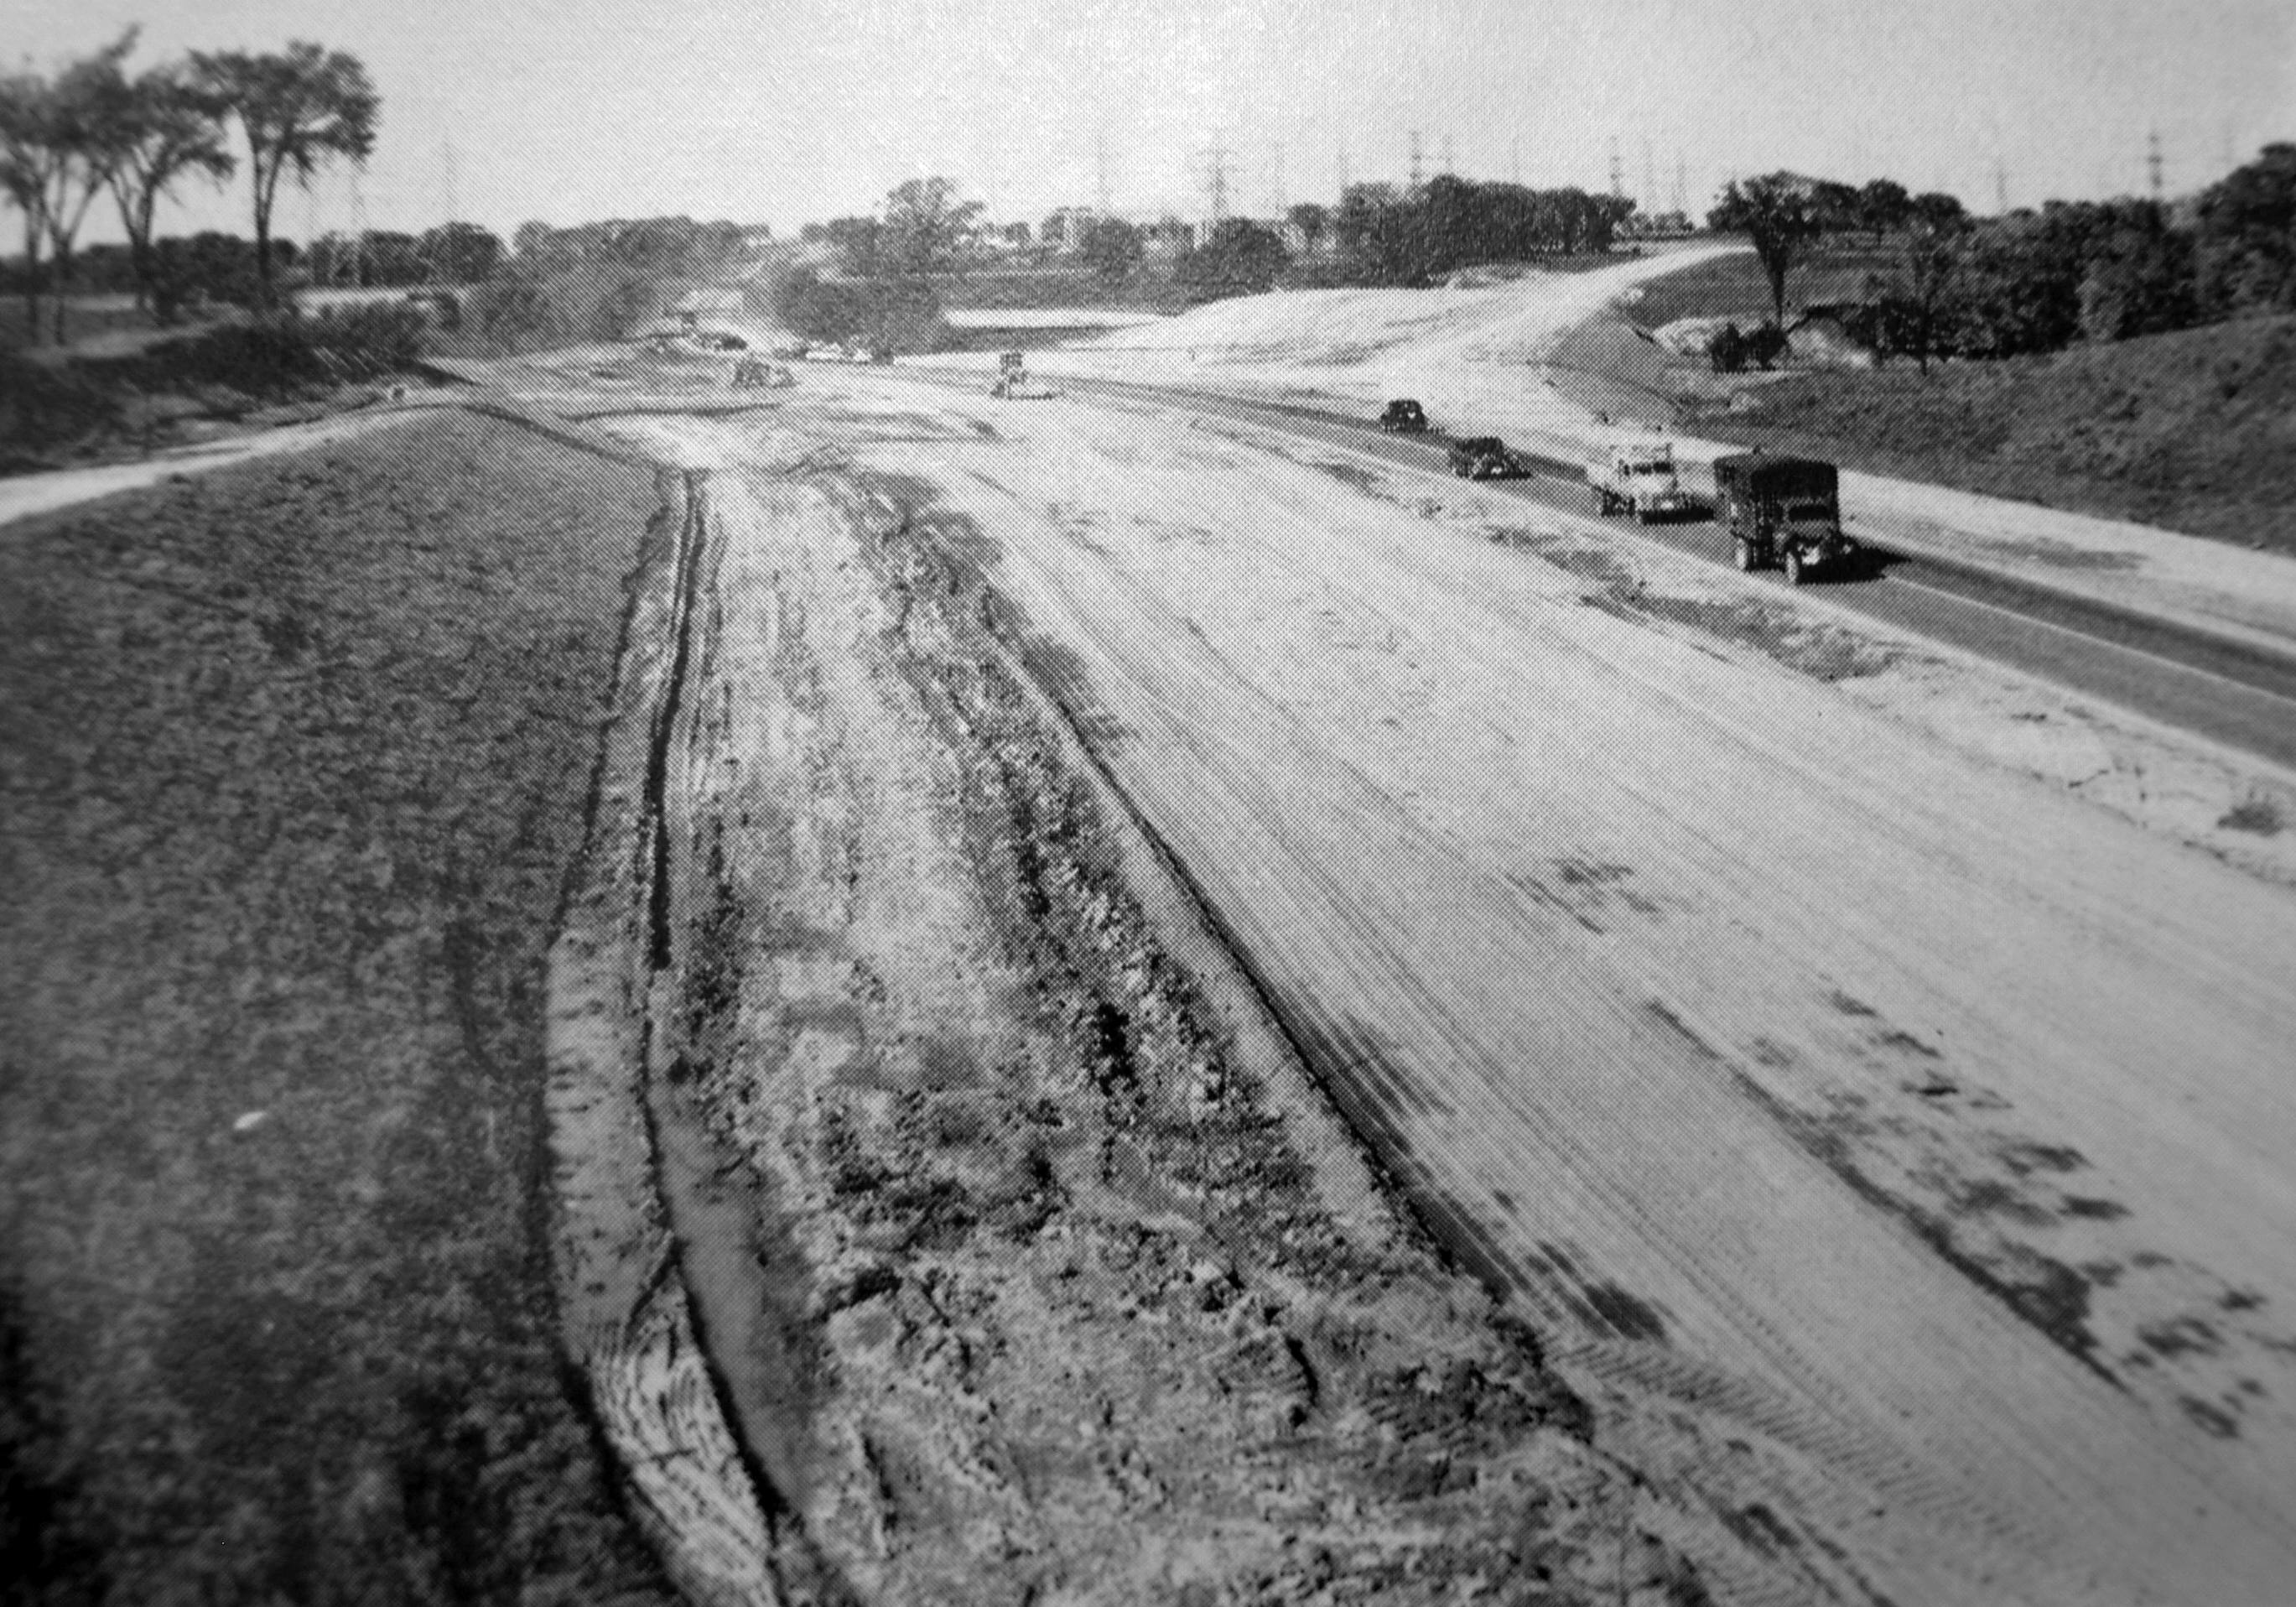 Road Construction Vehicle Png Black And White - File:27 widening and Toronto Bypass construction, 1954.png - Wikipedia